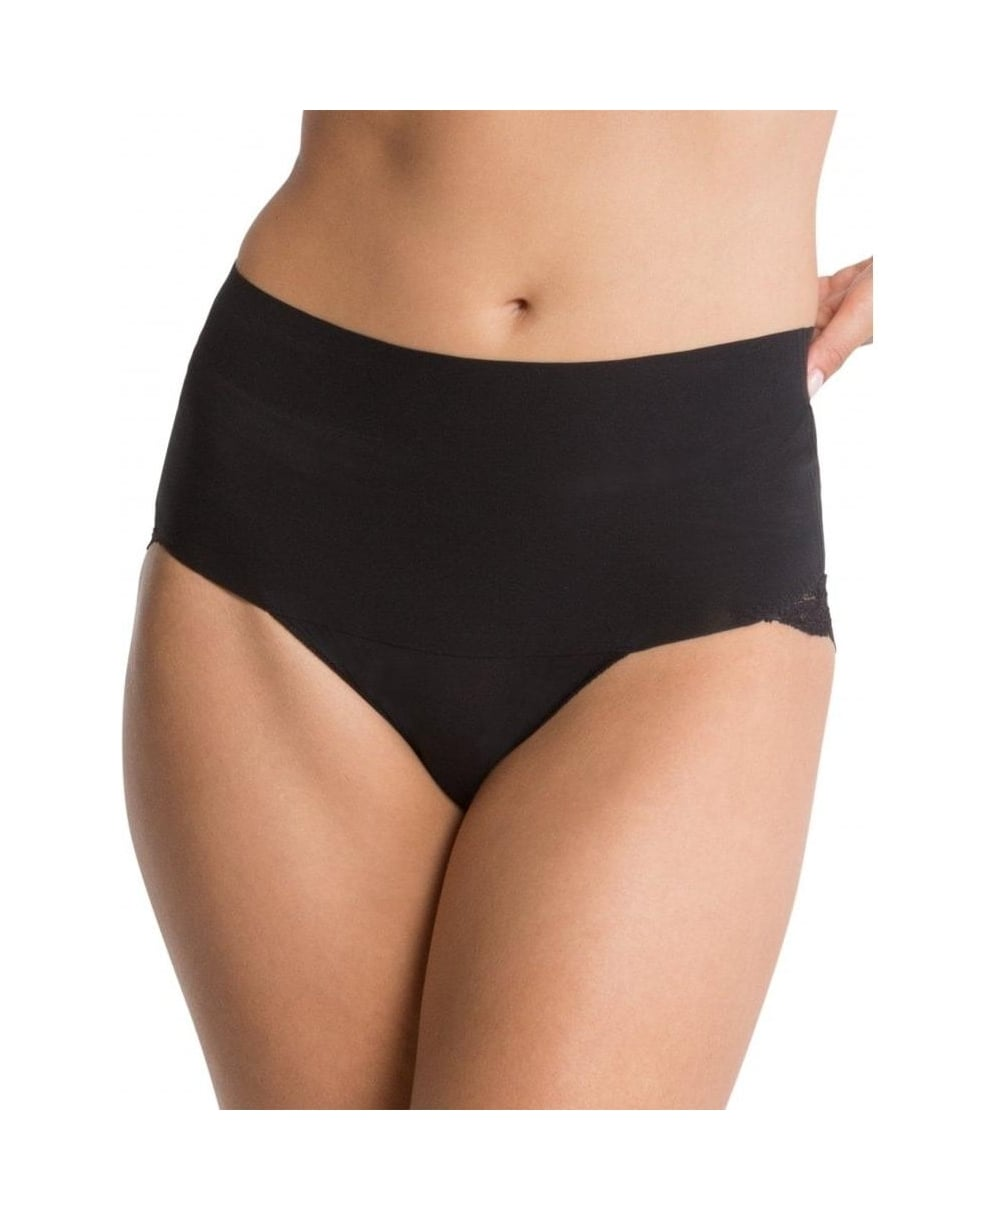 Spanx Undie-Tectable Lace Cheeky Panty